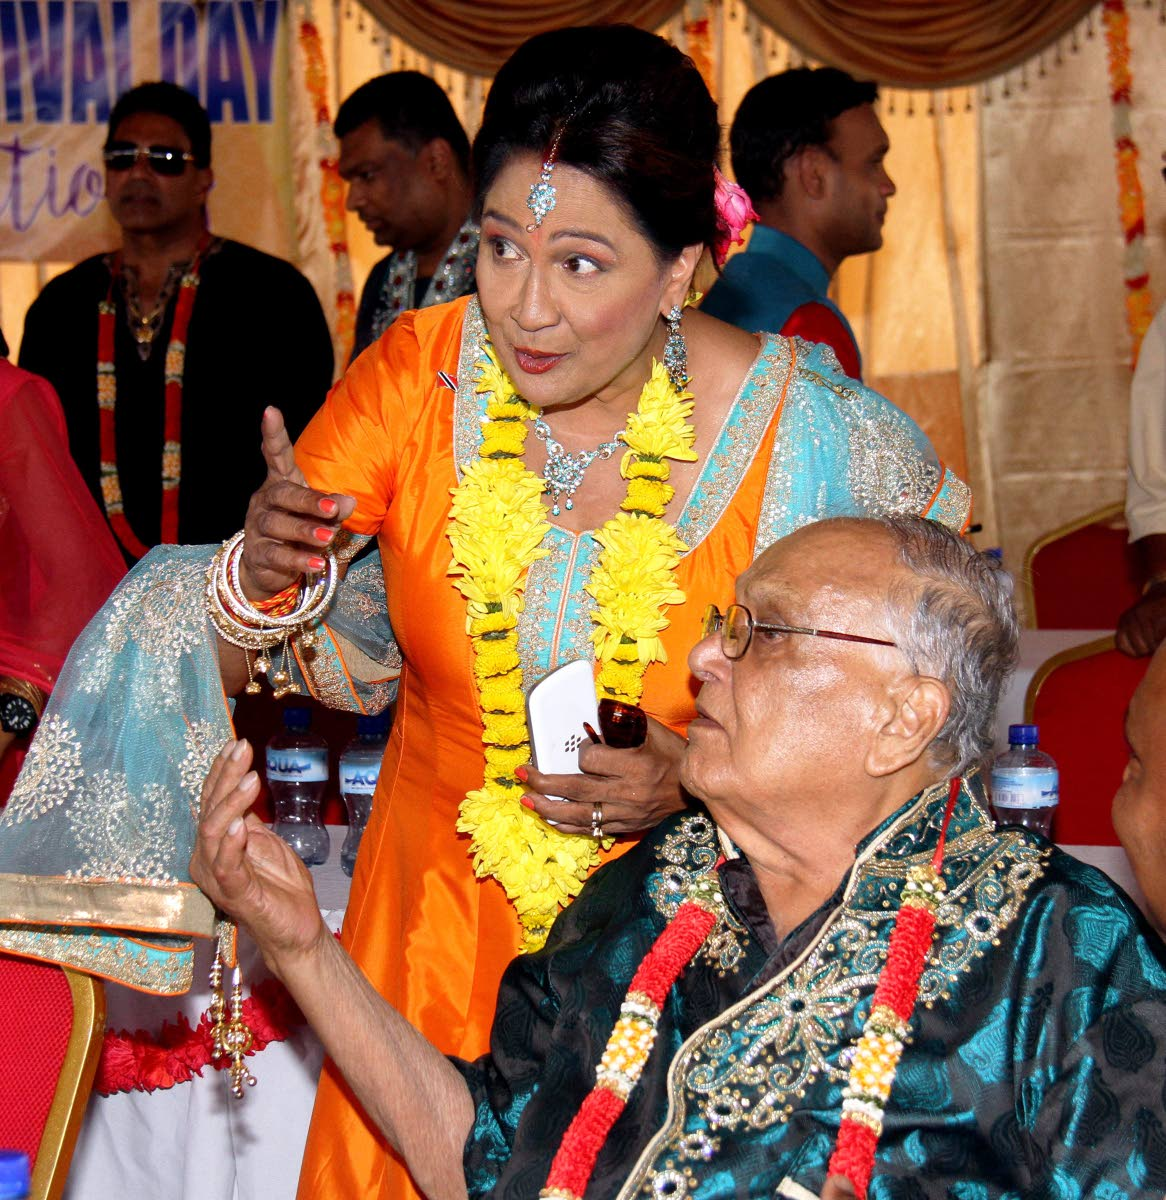 Maha Sabha secretary general Sat Maharaj and Opposition Leader Kamla Persad-Bissessar during Indian Arrival Day celebrations at Parvati Girls' Hindu College, Debe in 2017. Maharaj has withdrawn his invitation to Persad-Bissessar to attend this year's function the Maha Sabha, St Augustine after she supported a Muslim trainee teacher who was barred from Lakshmi Girls' Hindu College for not removing her hijab. FILE PHOTO